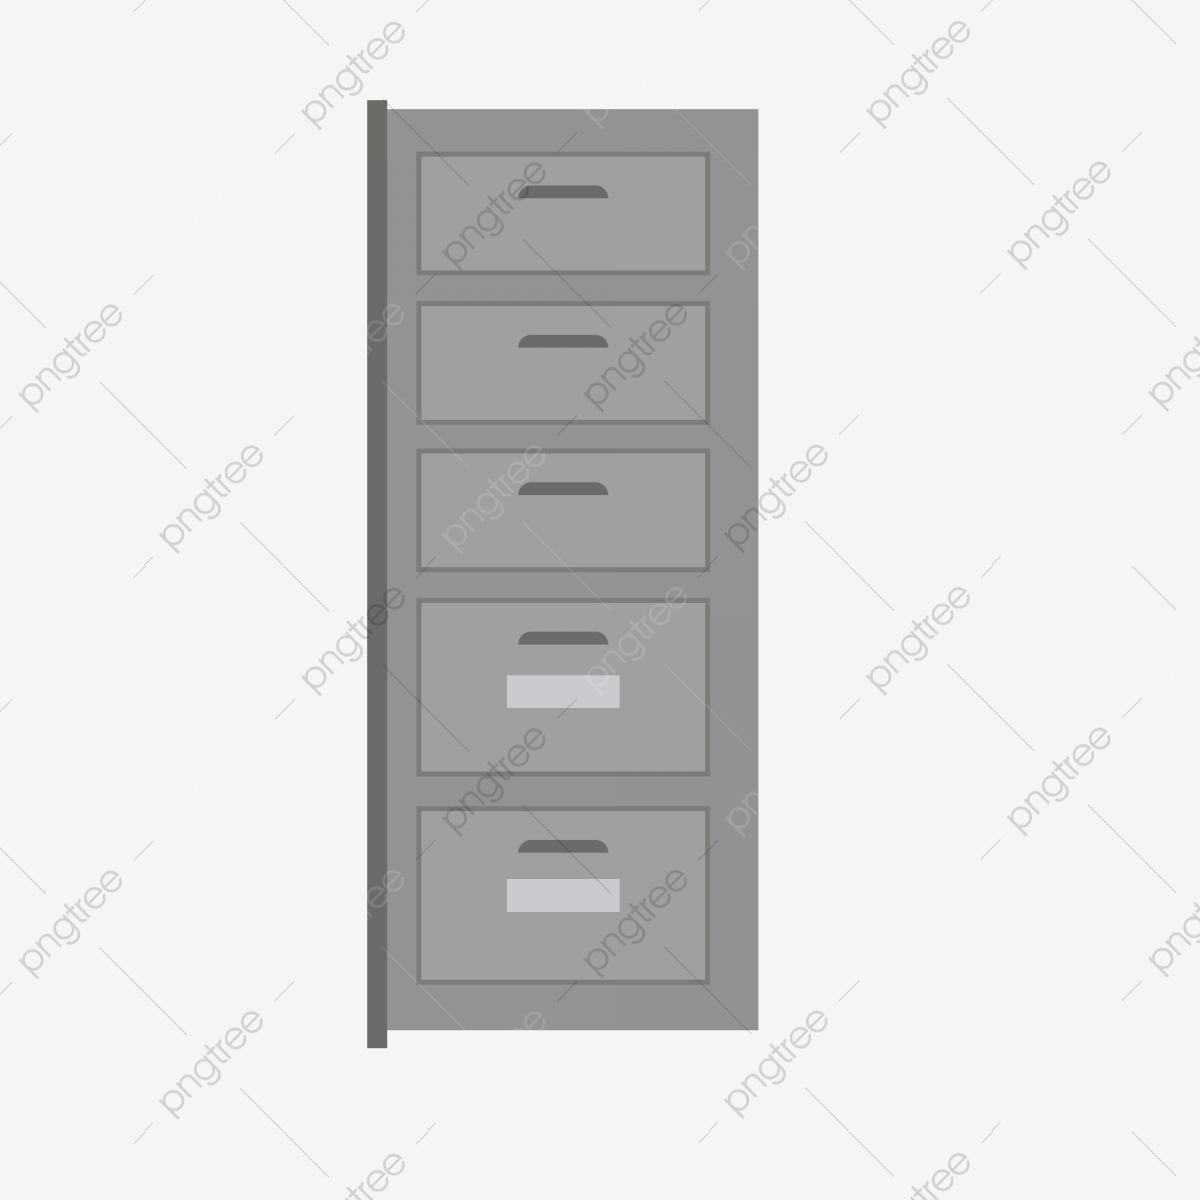 Cartoon Filing Cabinet Png Download Business Style Office Cabinet Filing Cabinet Png Transparent Clipart Image And Psd File For Free Download